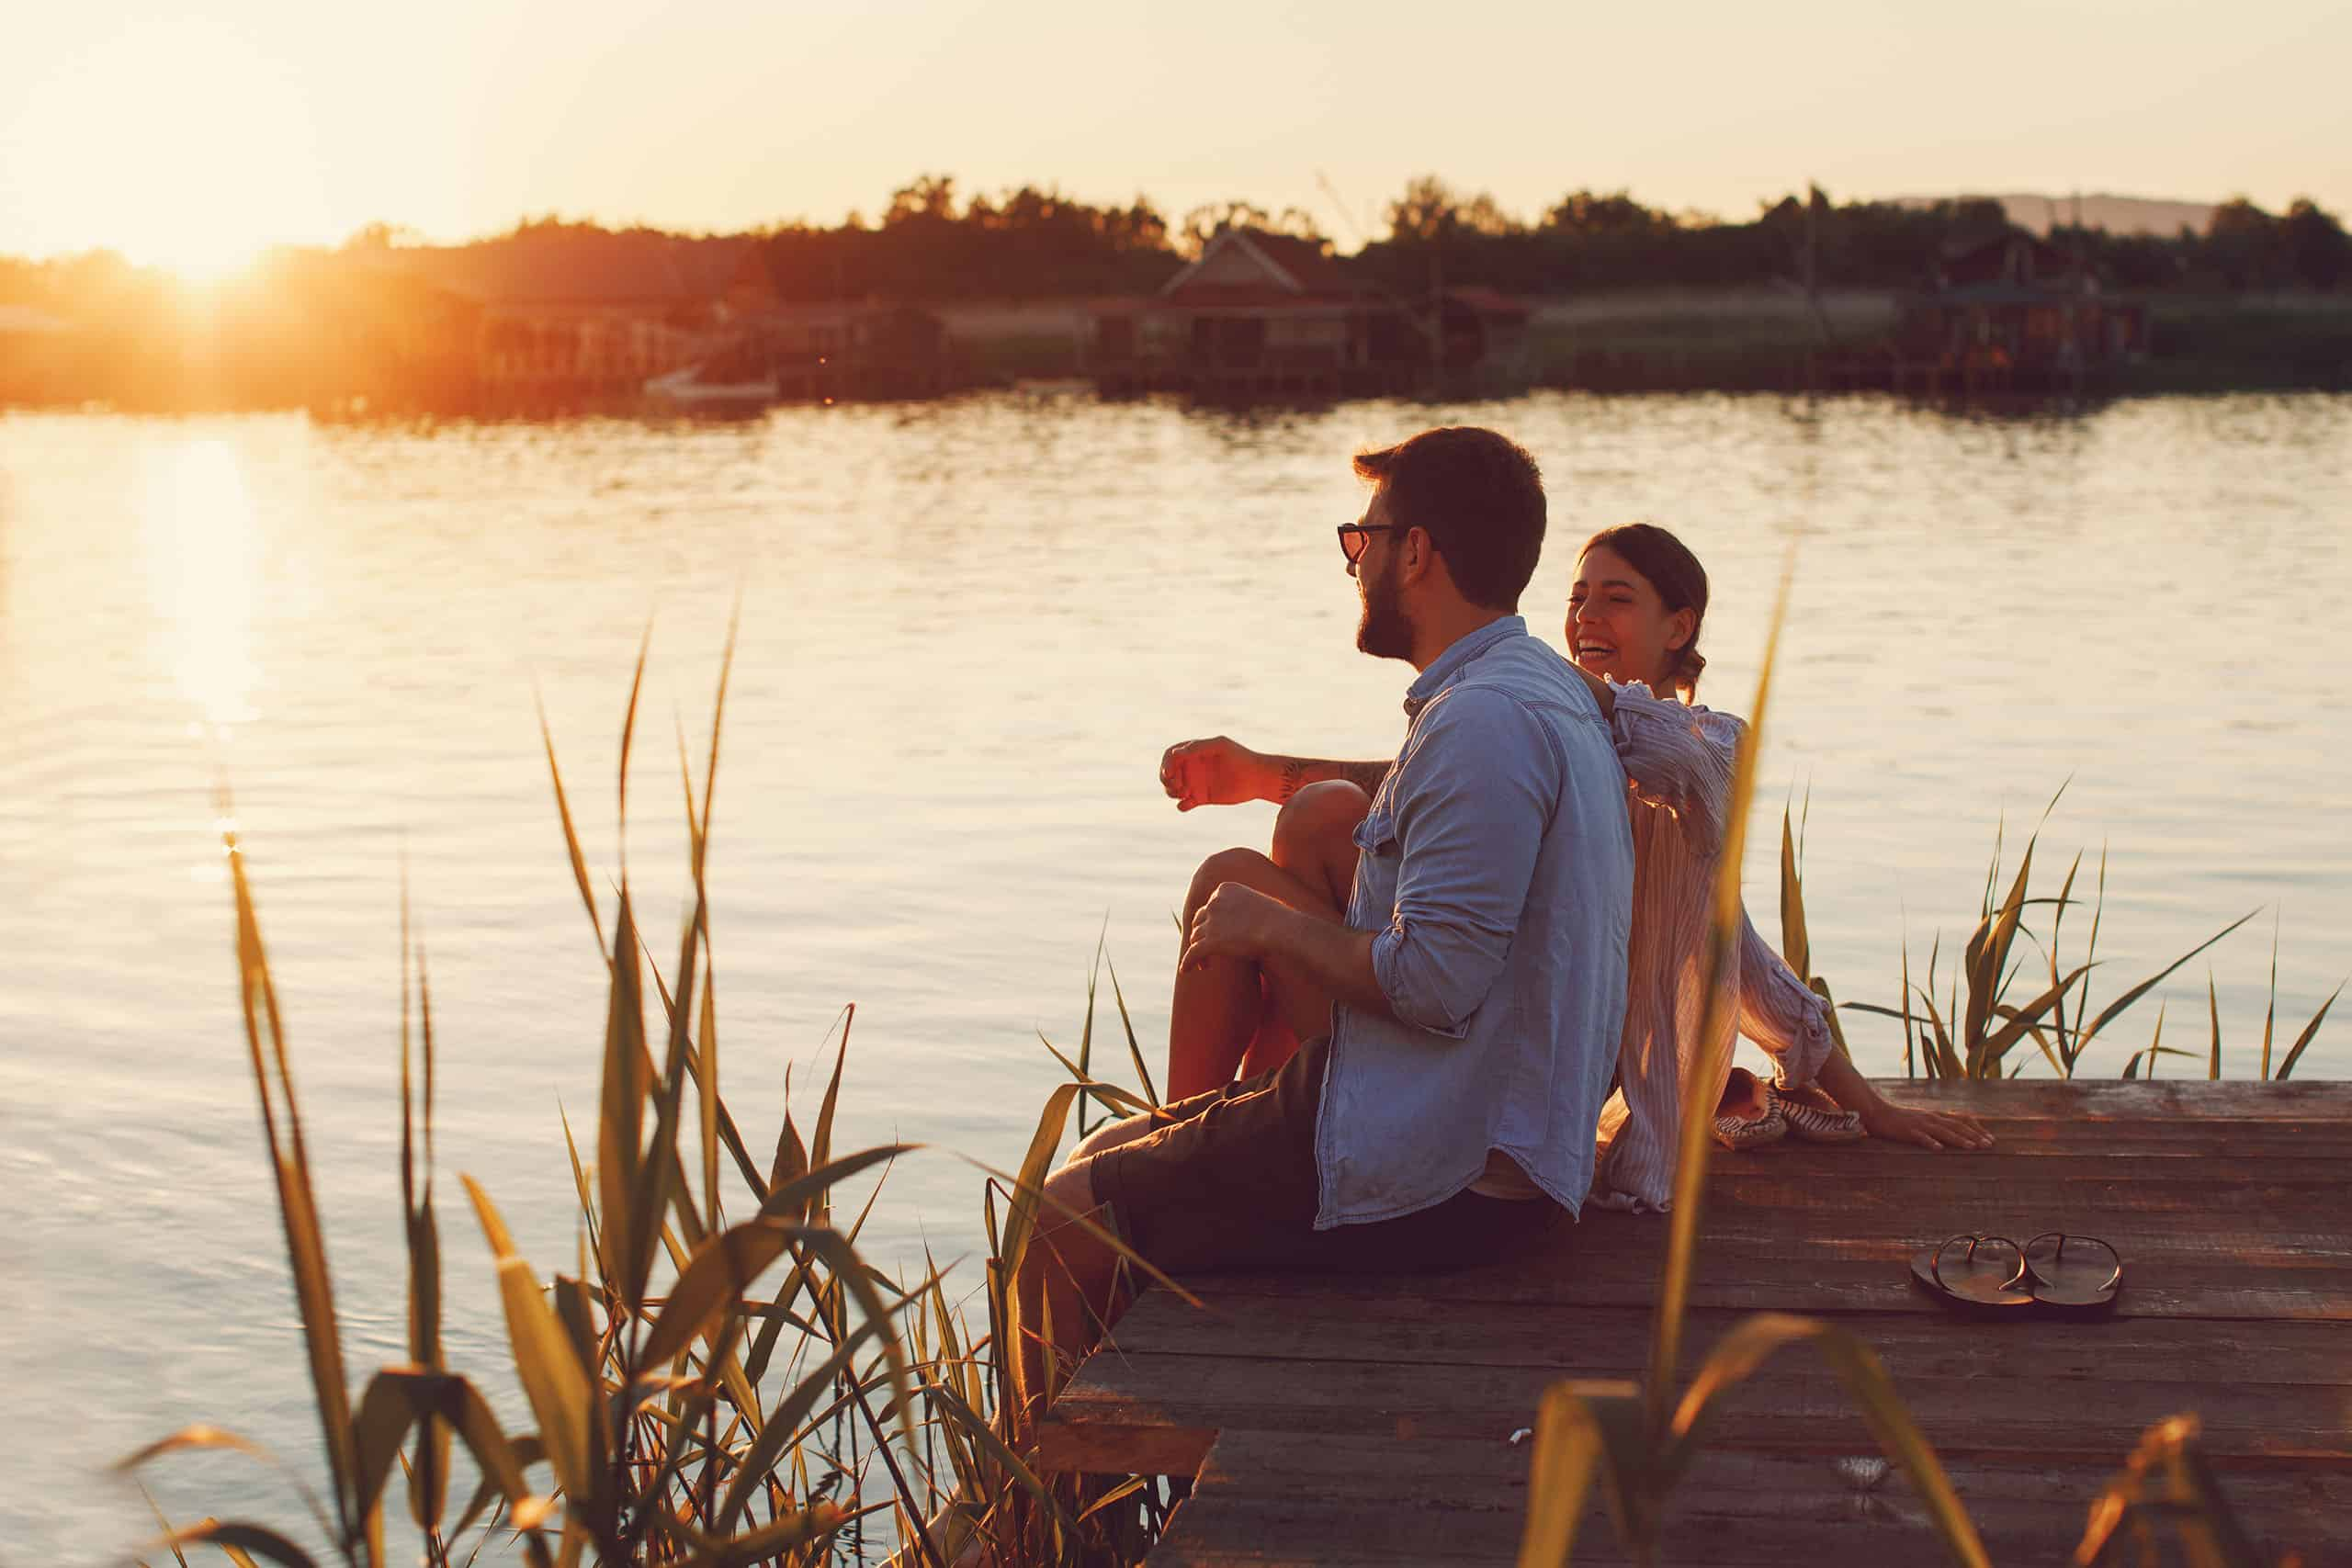 young-loving-couple-enjoys-by-the-river-during-the-sunset